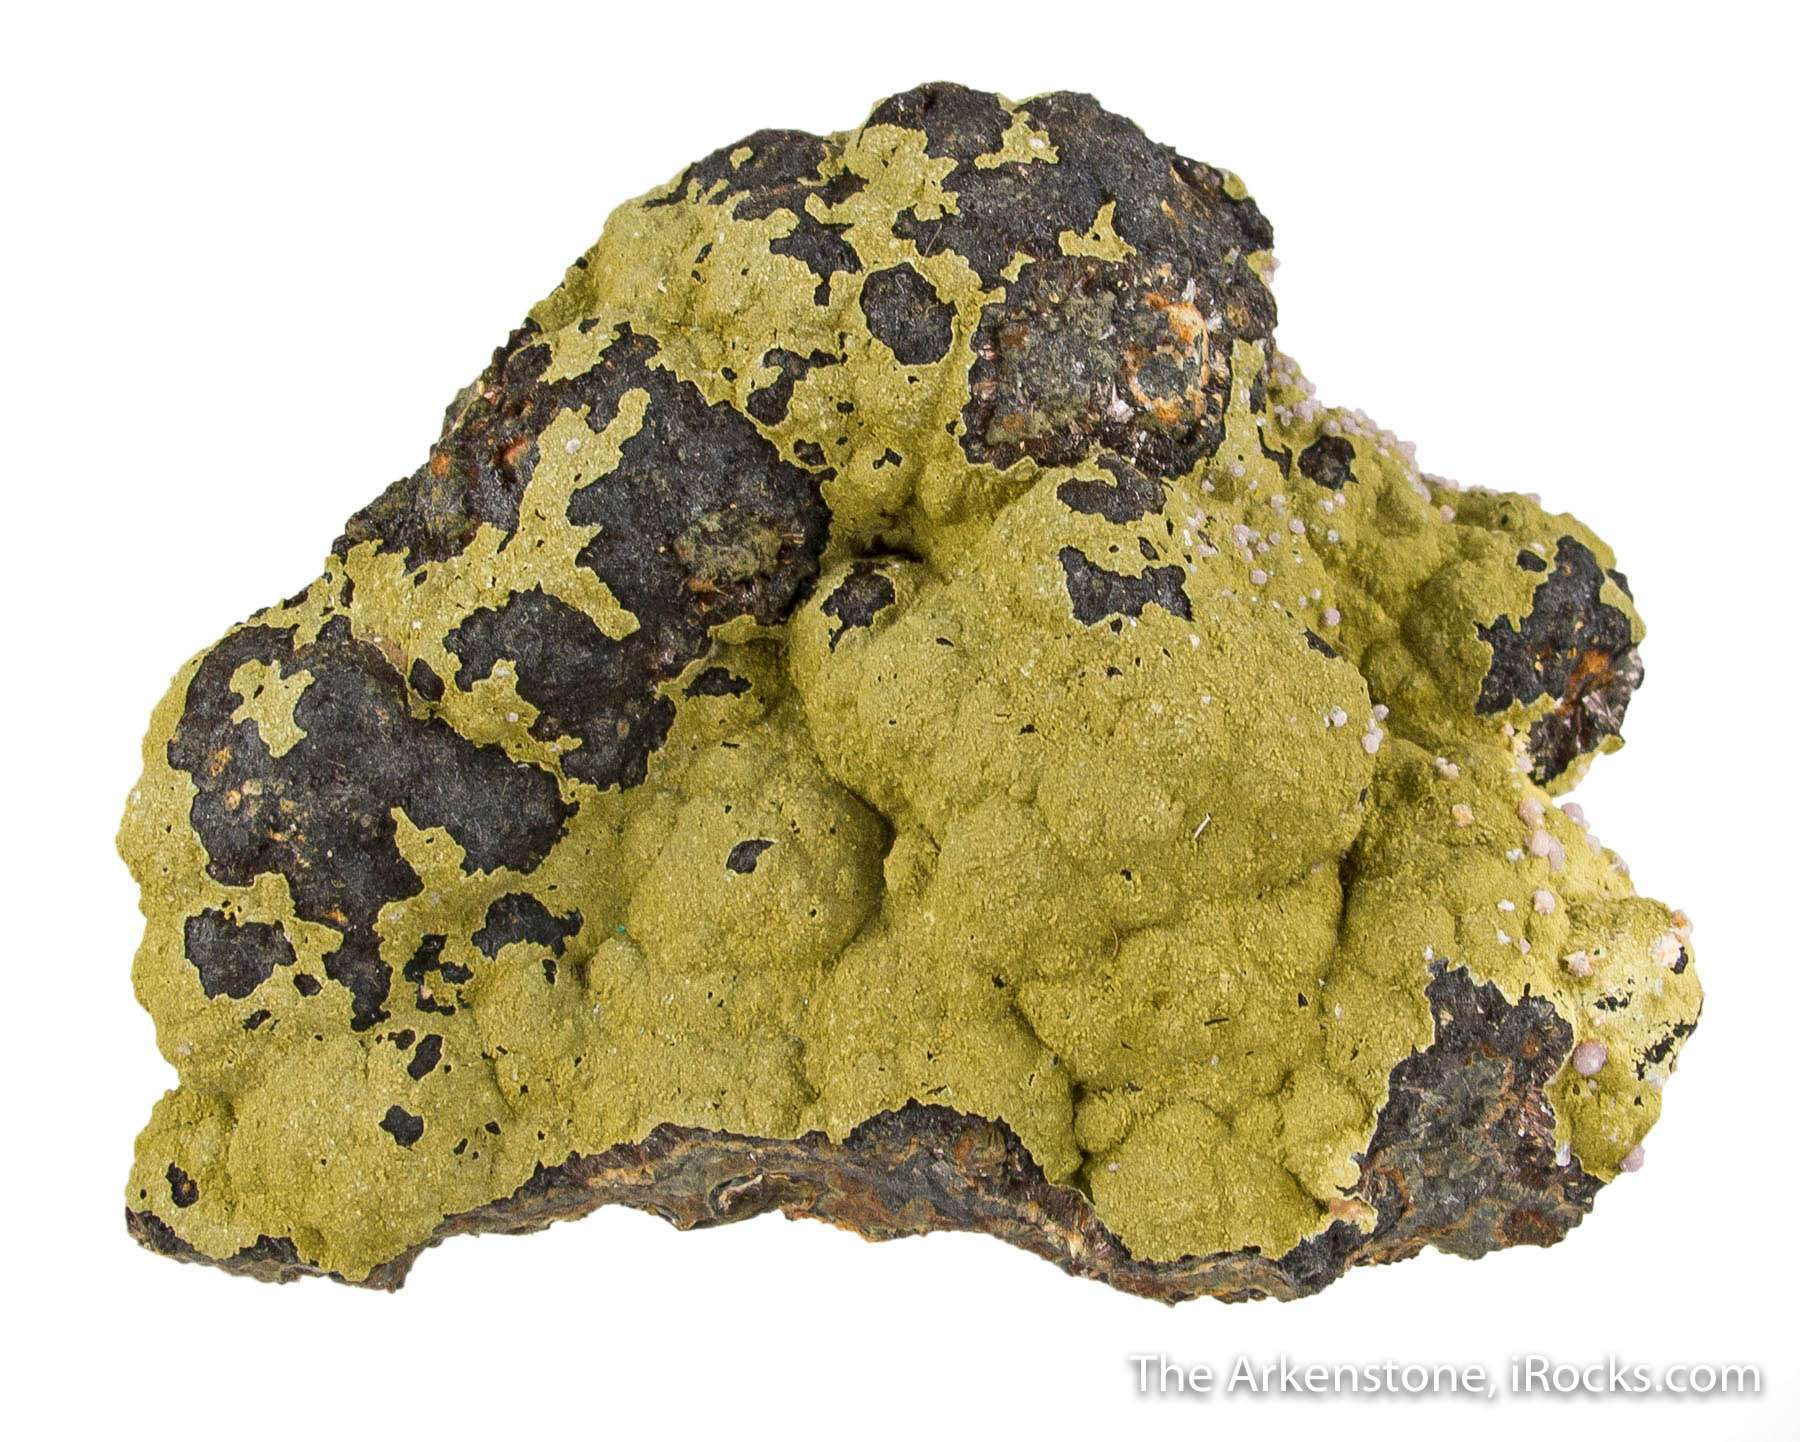 A mounded surface beraunite possibly dufrenite rockbridgeite covered